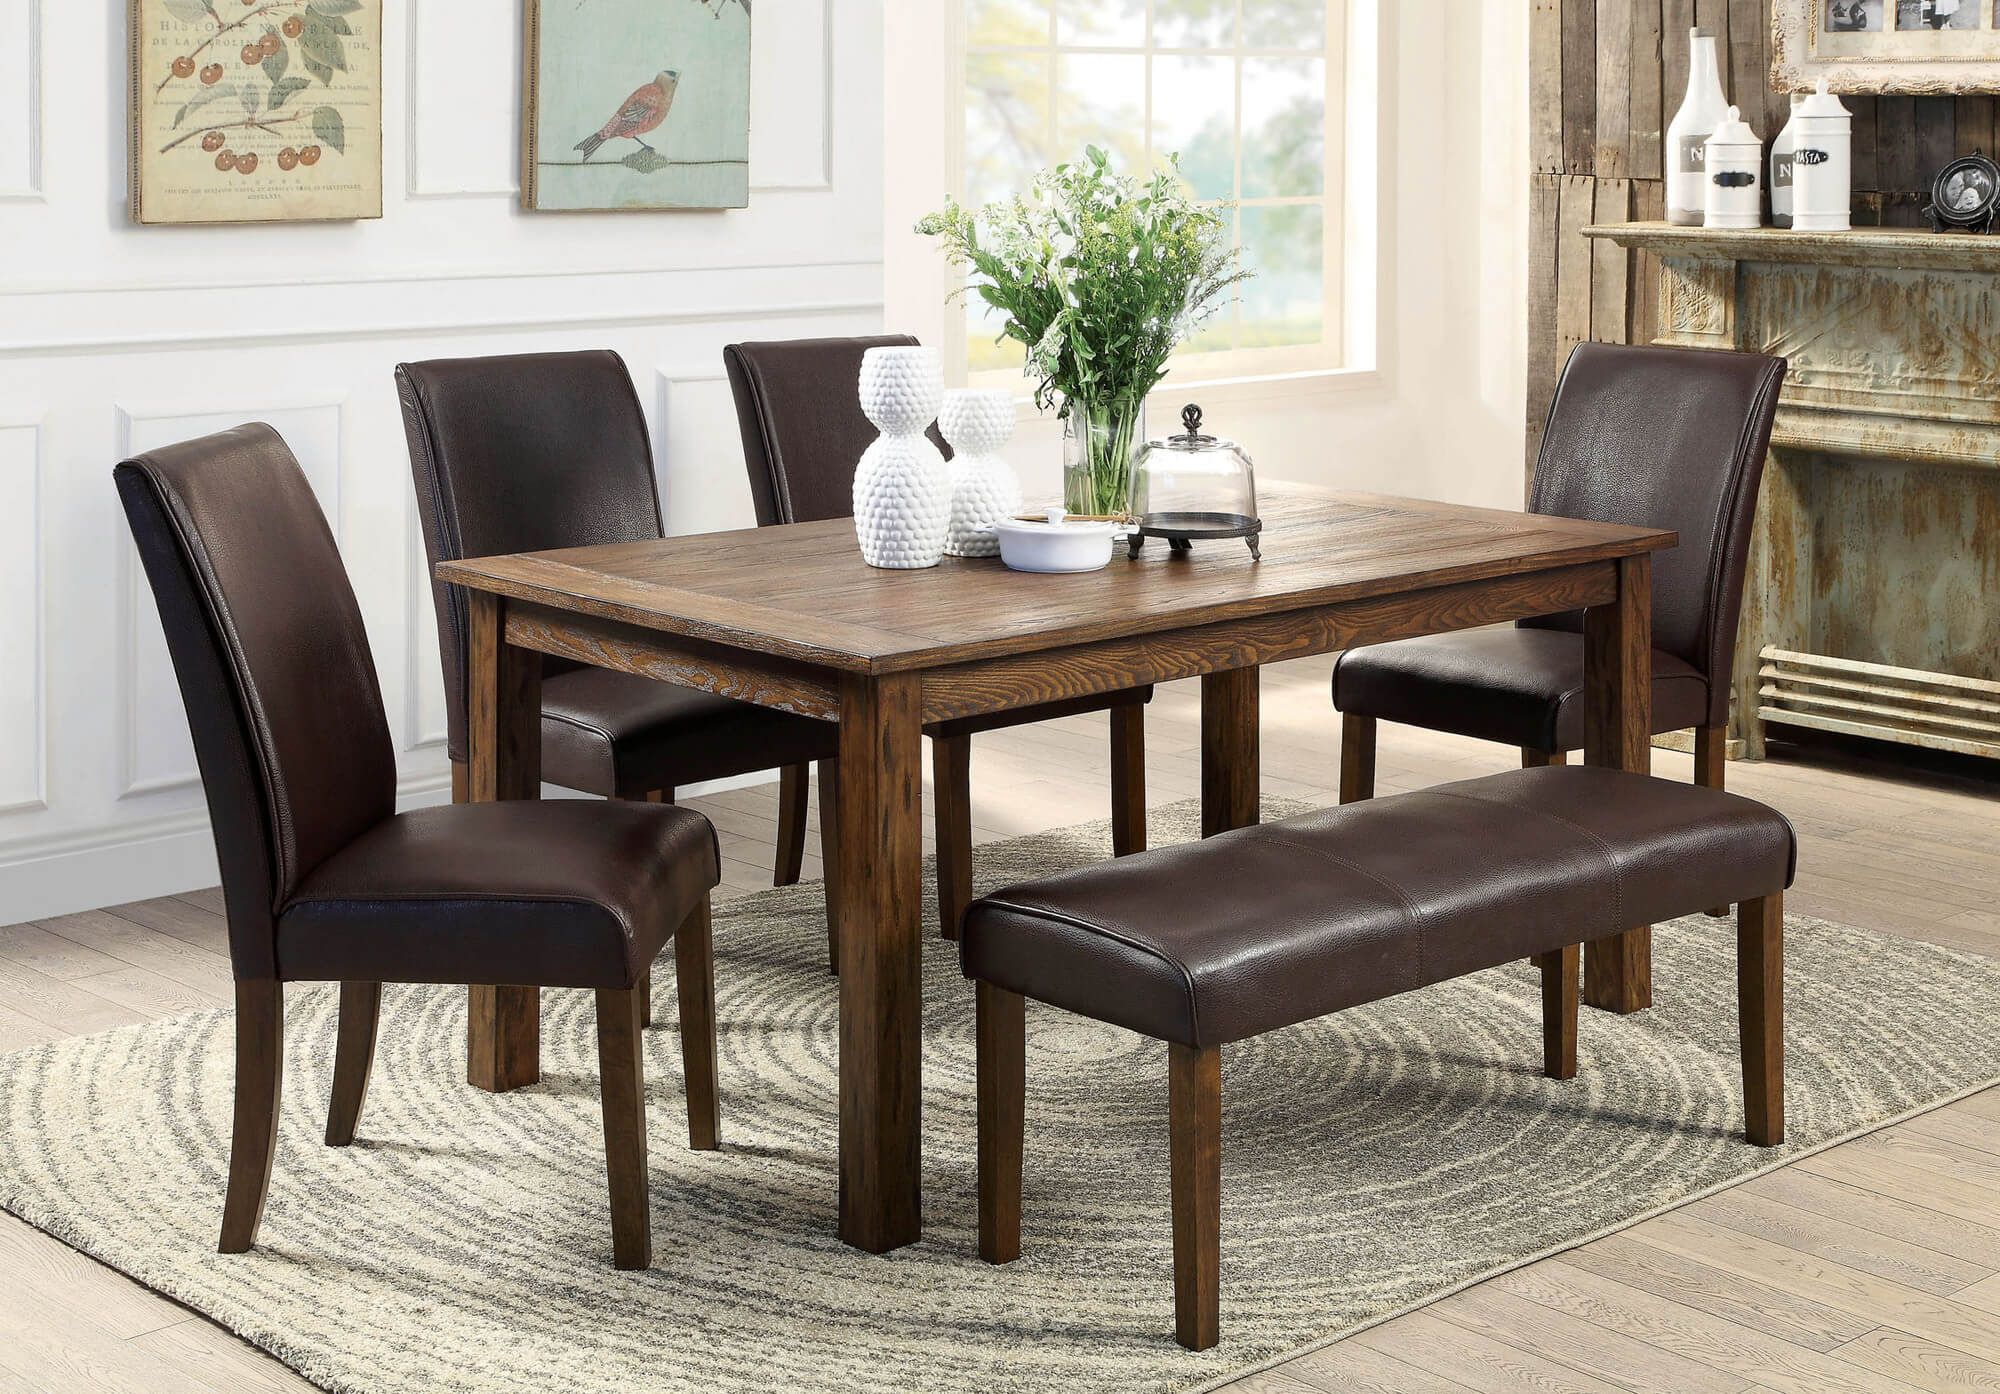 Rectangular Dining Tables For Small Spaces  Interior Paint Colors Awesome Small Rectangular Kitchen Table 2018